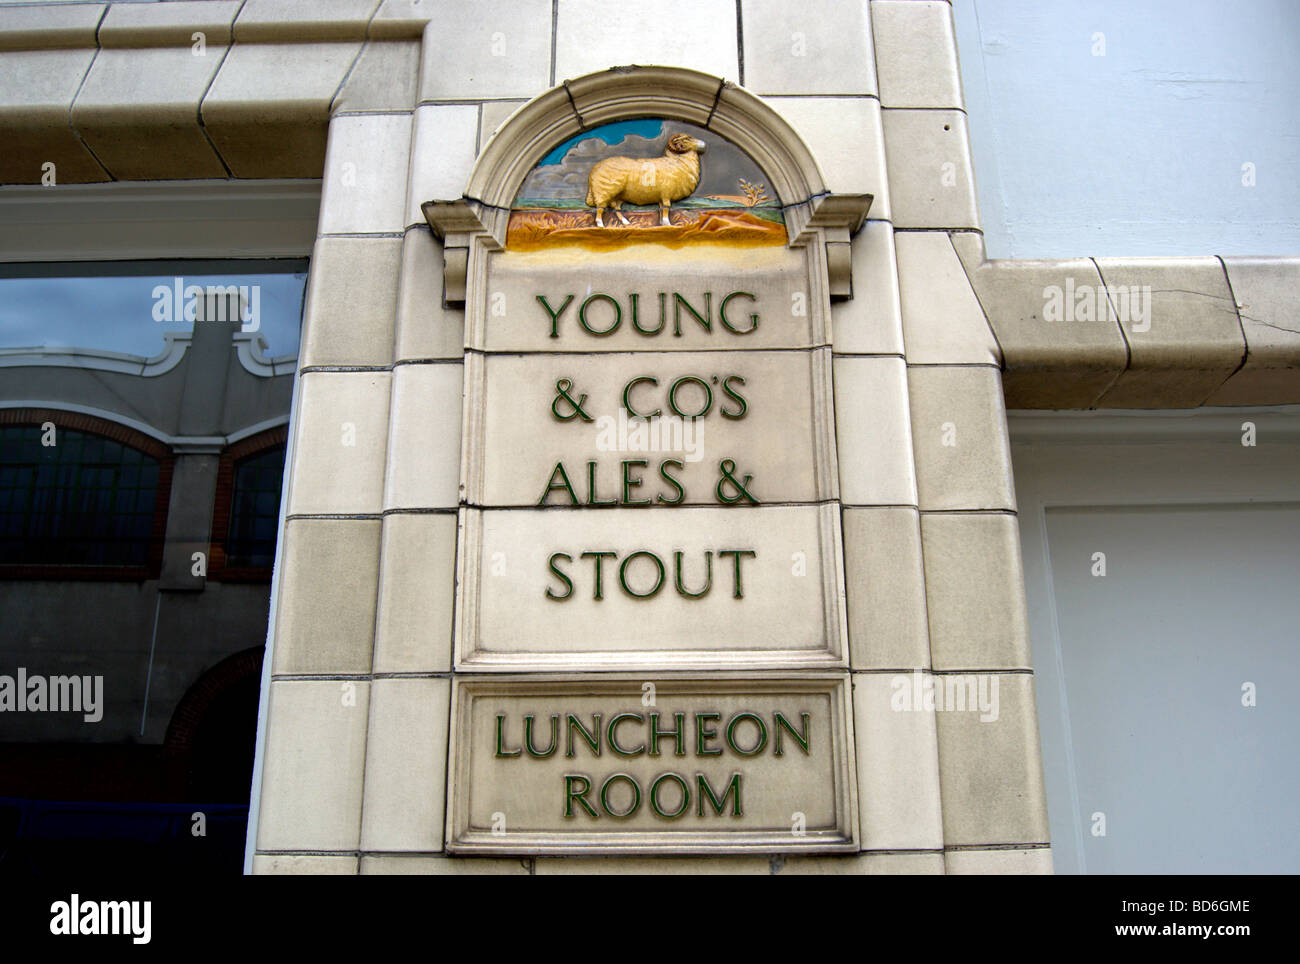 luncheon room and young & co's ales and stouts signs, and image of a ram, at the crown and anchor pub, chiswick, - Stock Image